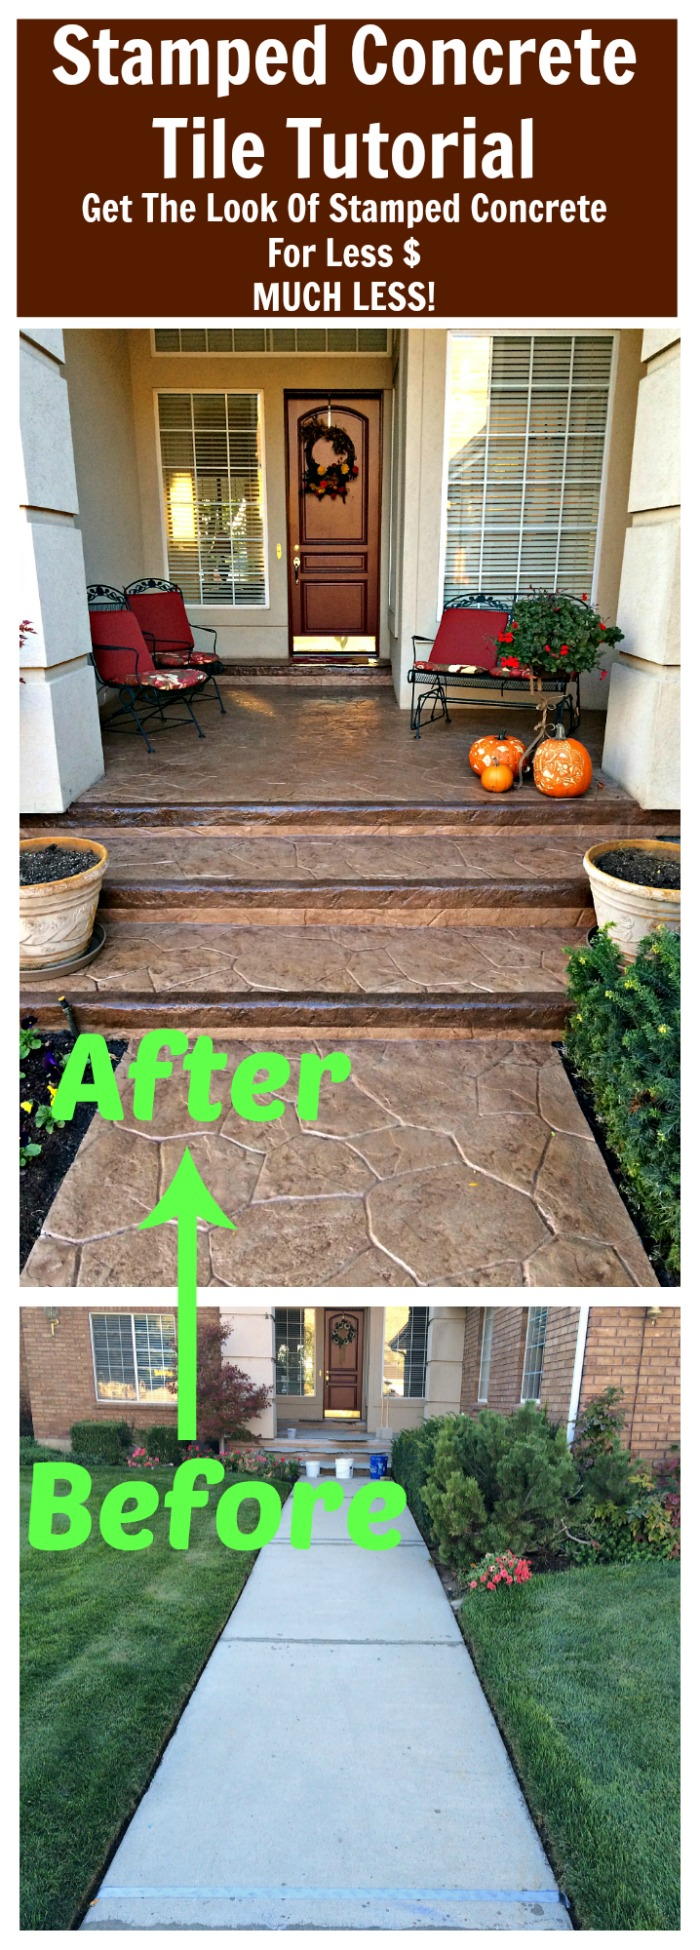 Diy stamped concrete tile tutorial do it yourself fun ideas diy stamped concrete tile tutorial get the look of stamped concrete for less dailygadgetfo Gallery